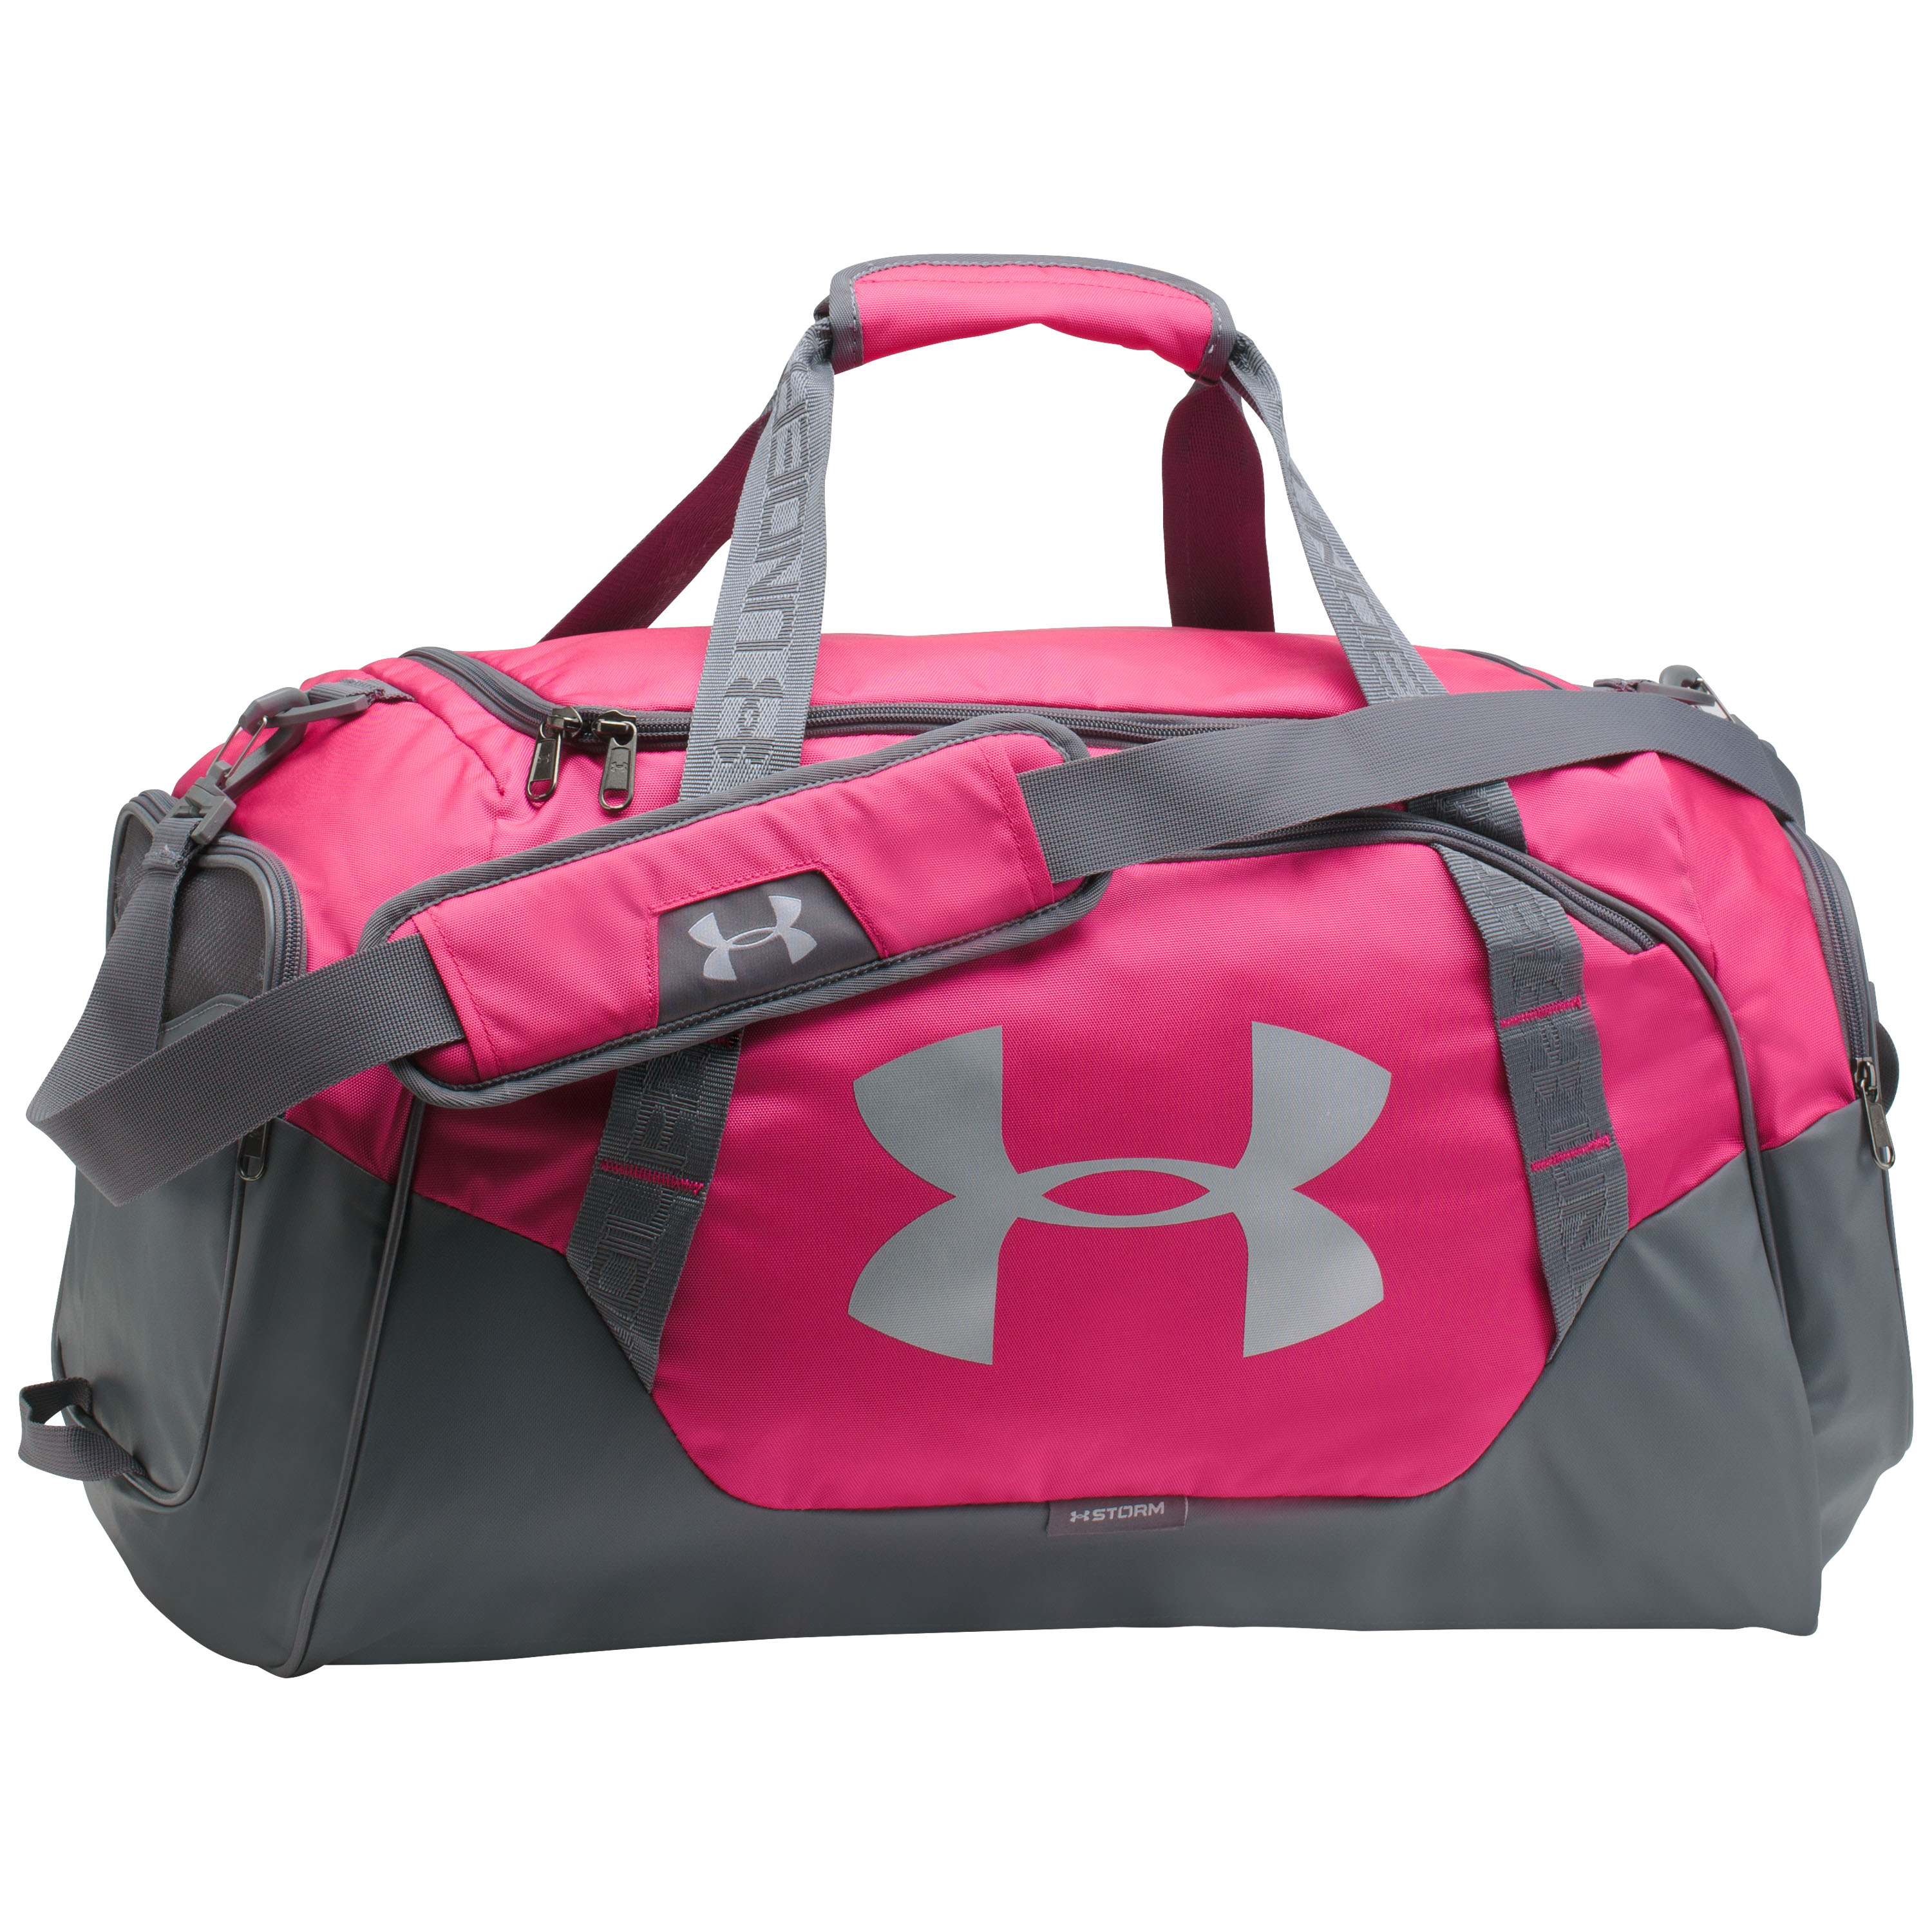 Under Armour Sporttasche Undeniable Duffle 3.0 medium pink